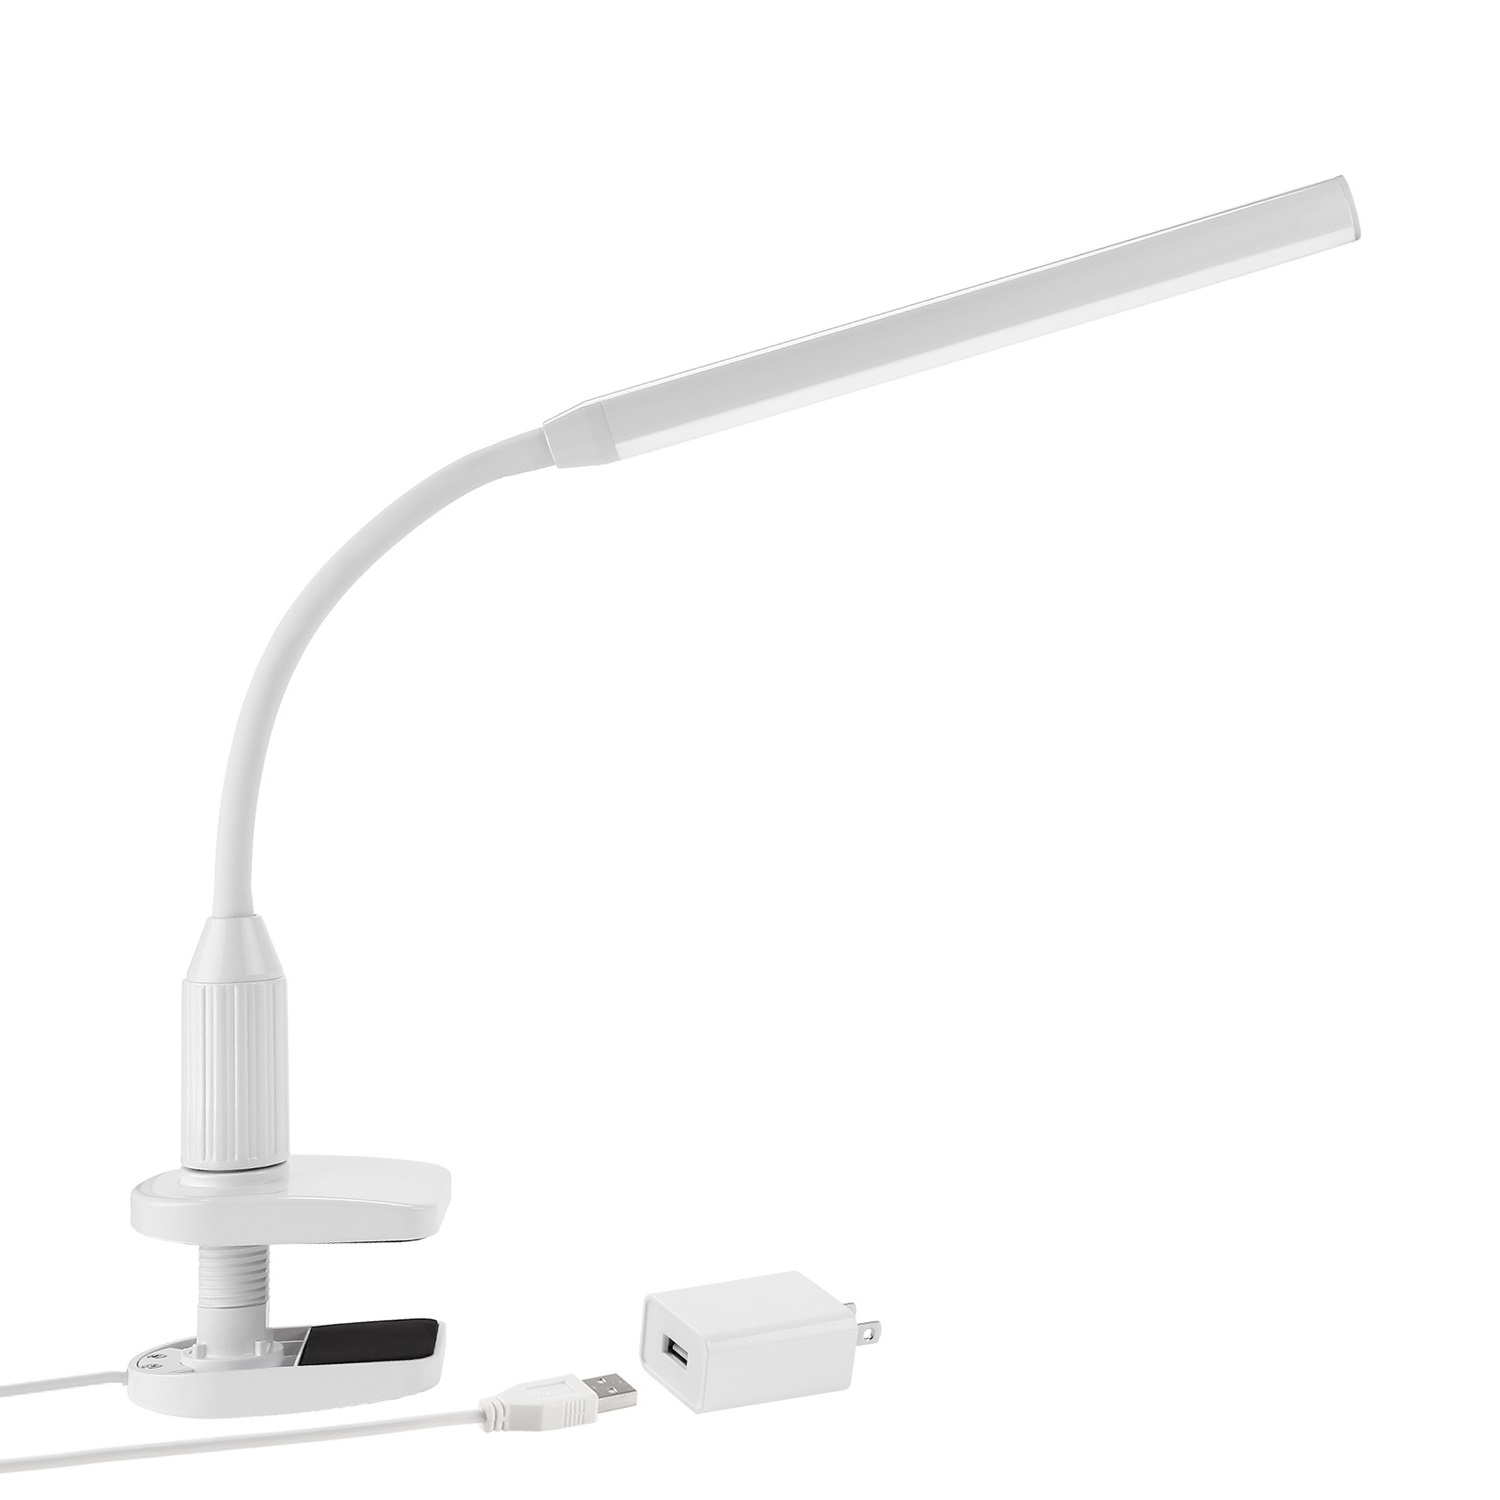 TORCHSTAR LED Kids Clamp Desk Lamp, Fully Dimmable Study Desk Light, LED Desk  Lamp For College, Memory Function, White   Walmart.com